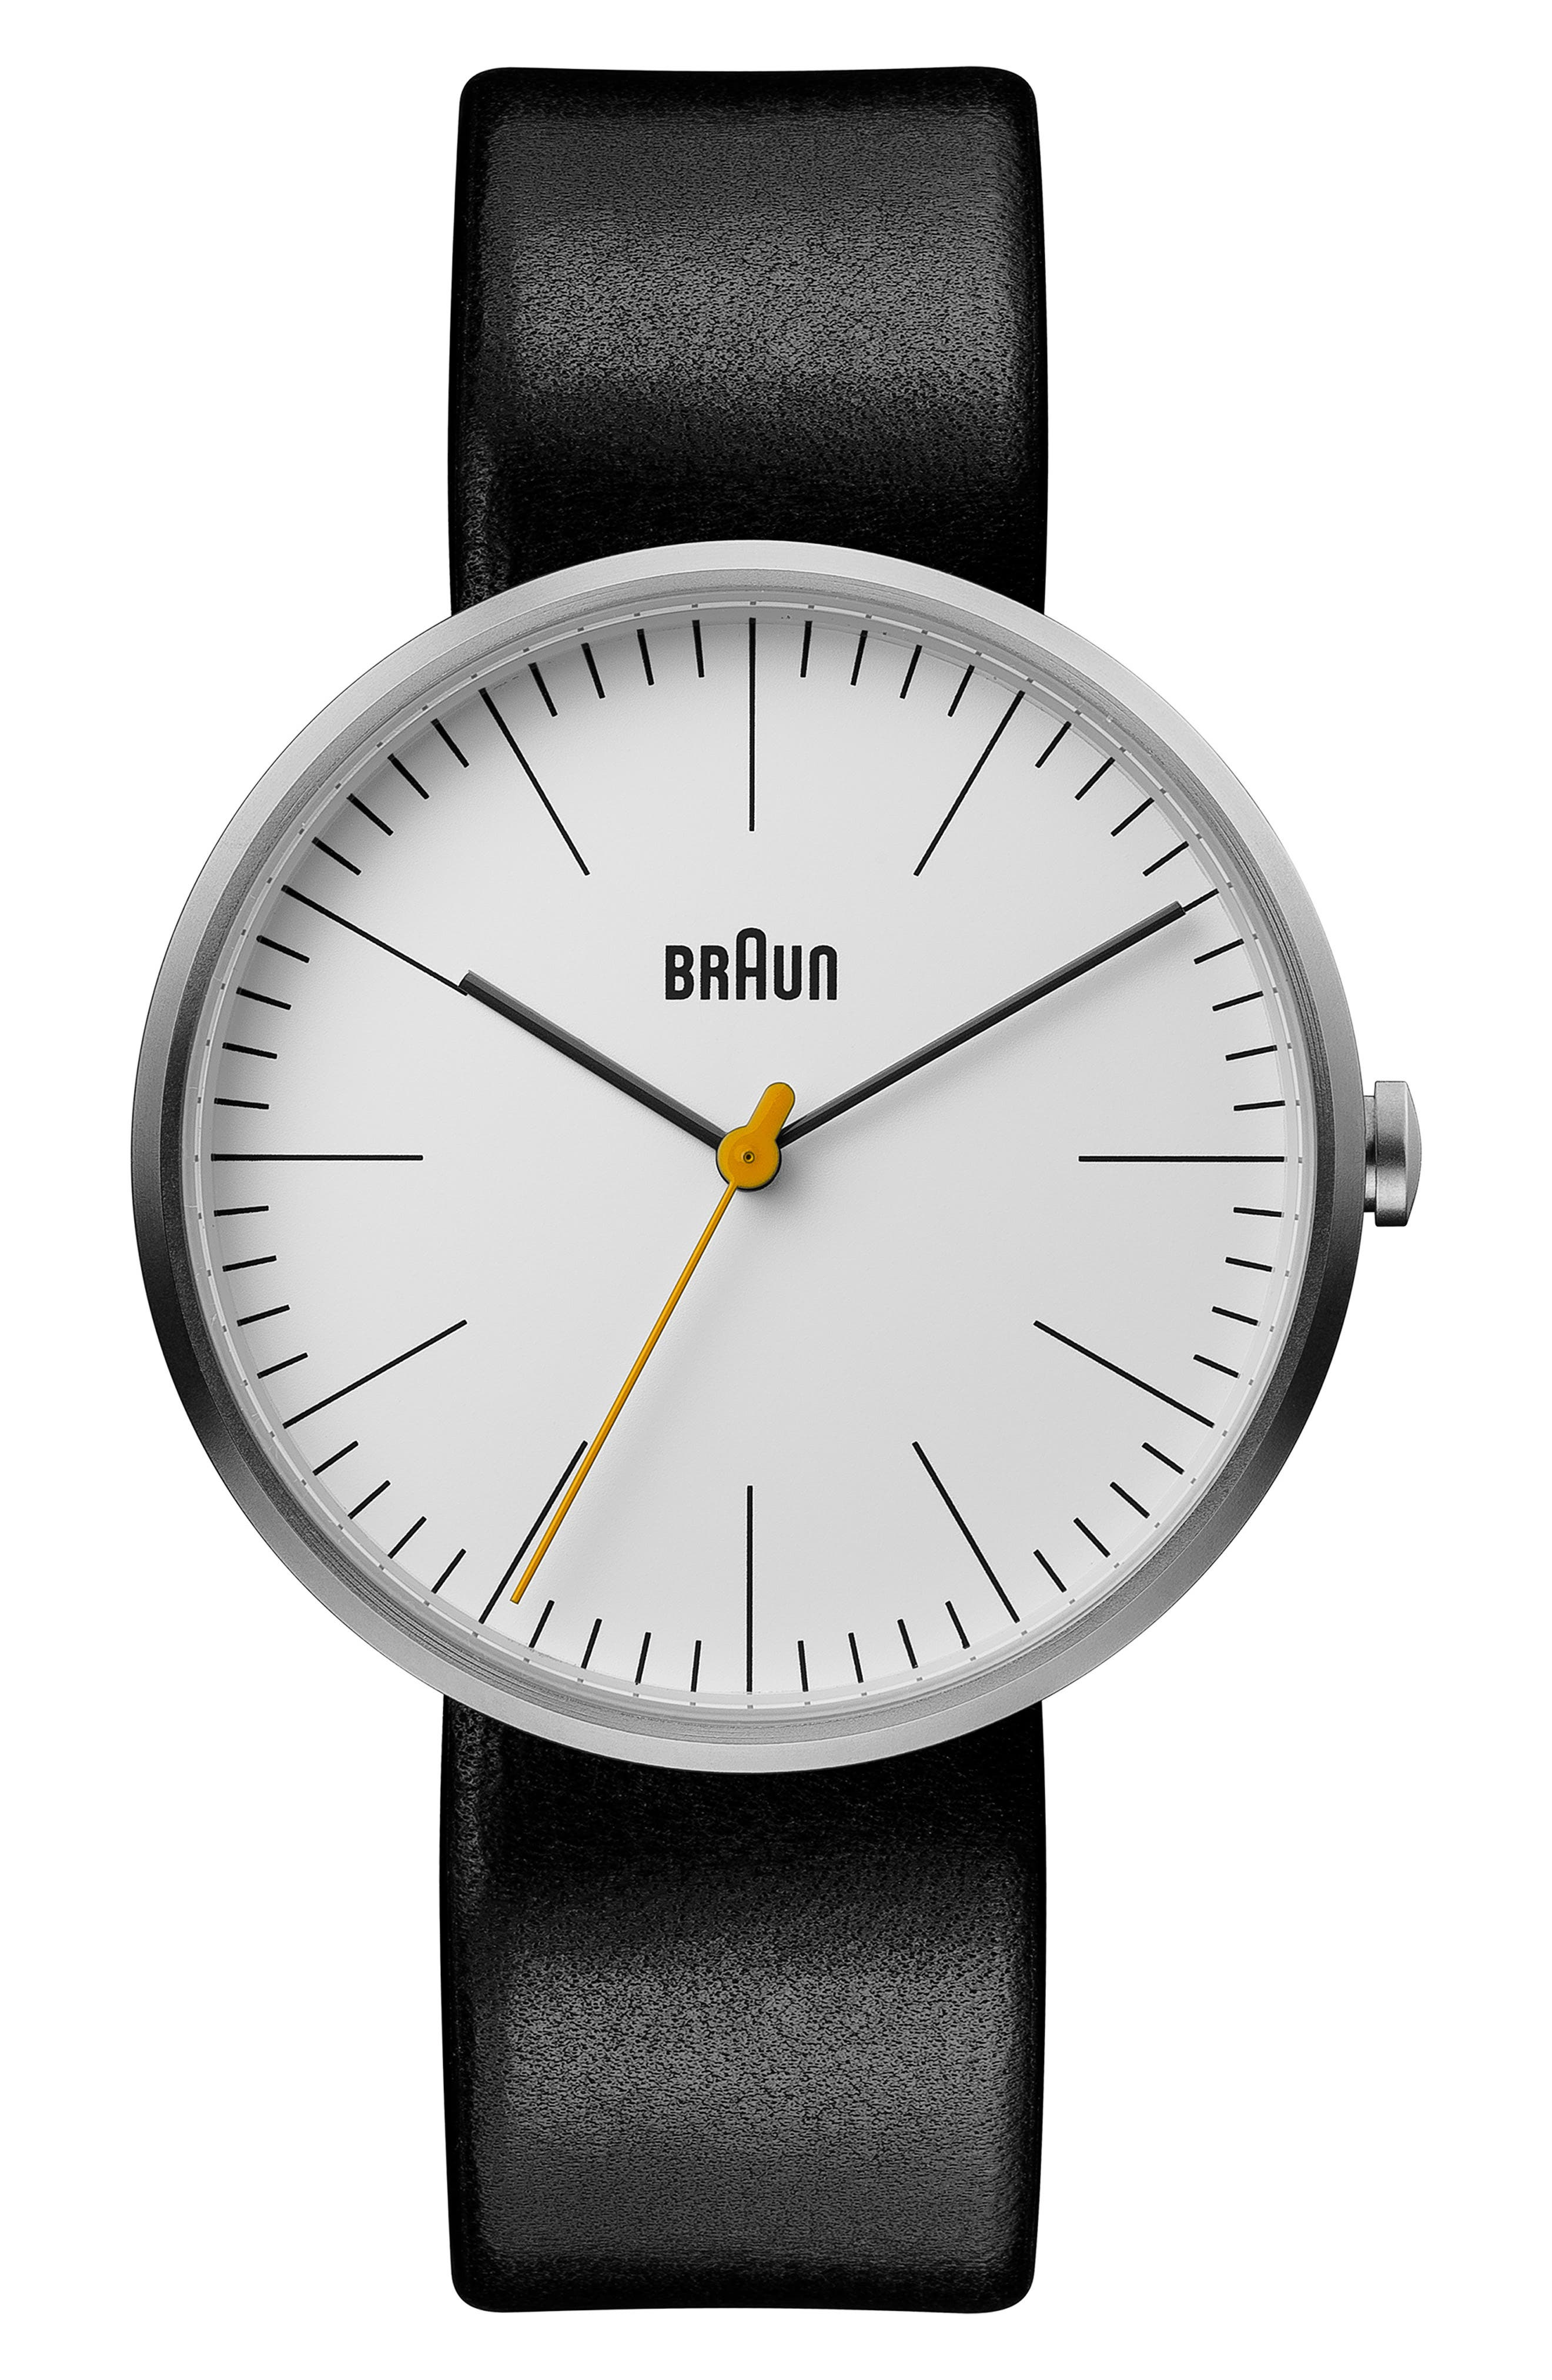 BRAUN Classic Leather Strap Watch, 42Mm in Black/ White/ Silver